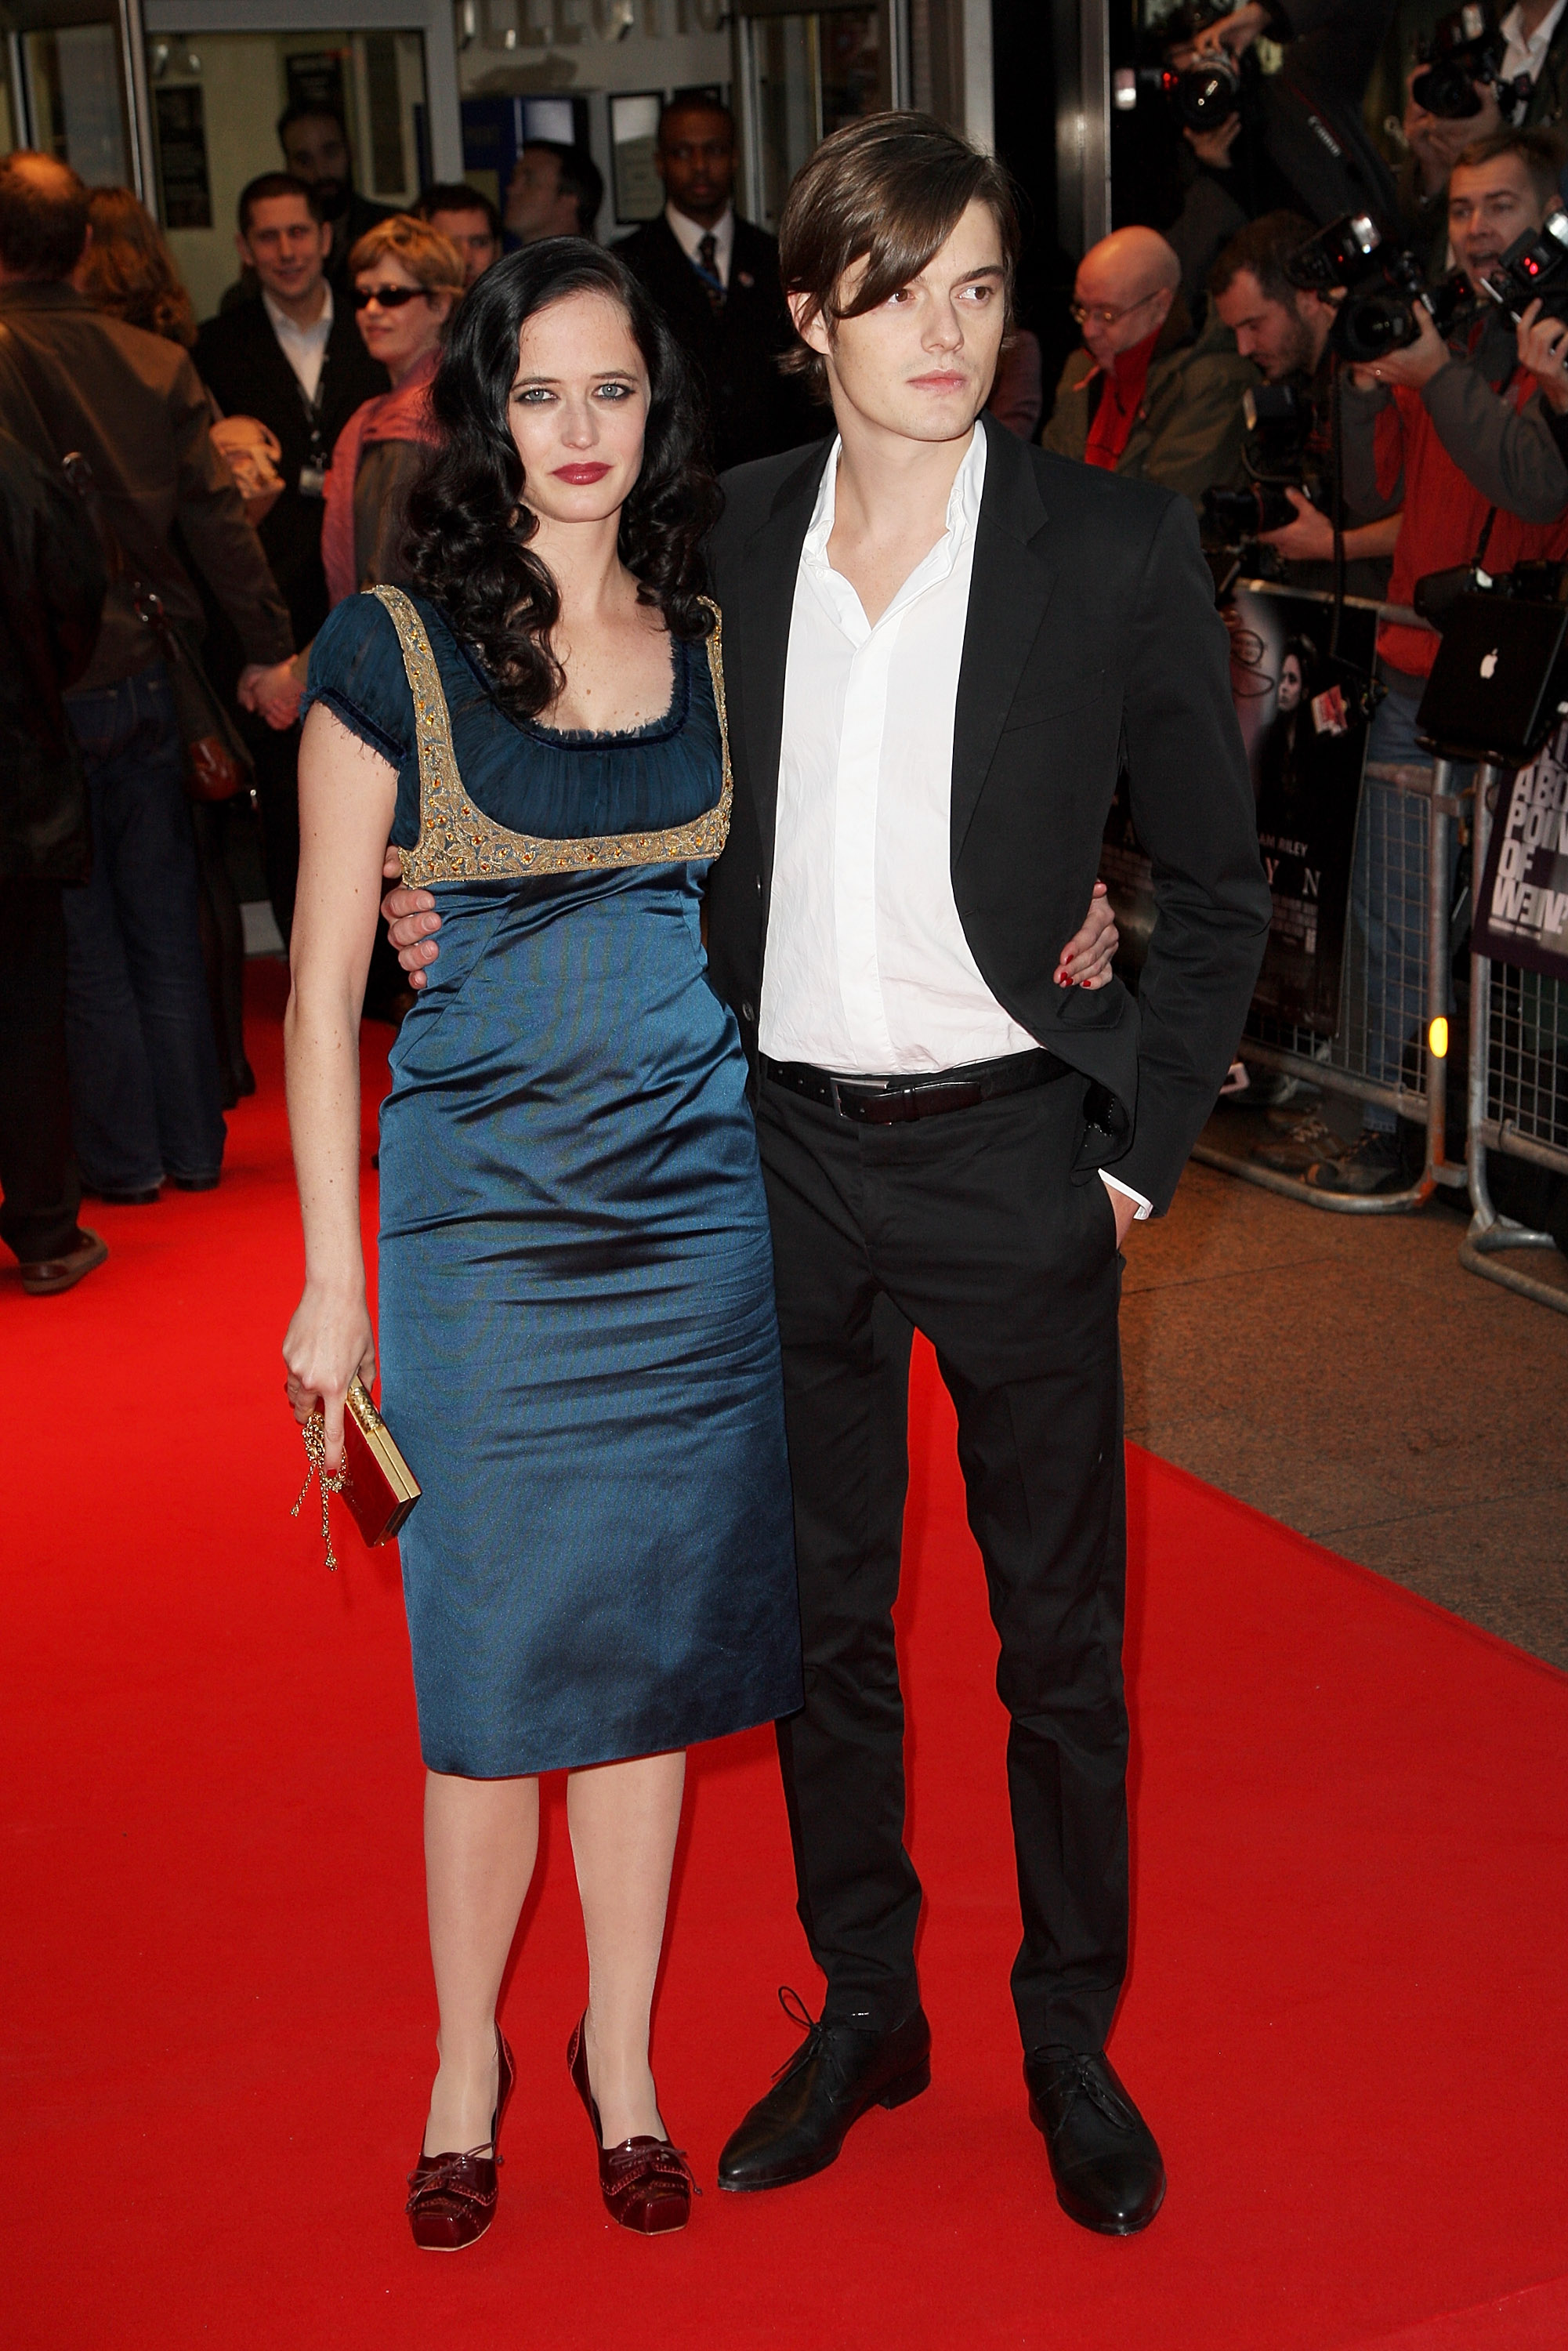 Photos Of Ryan Phillippe And Eva Green At The Premiere Of